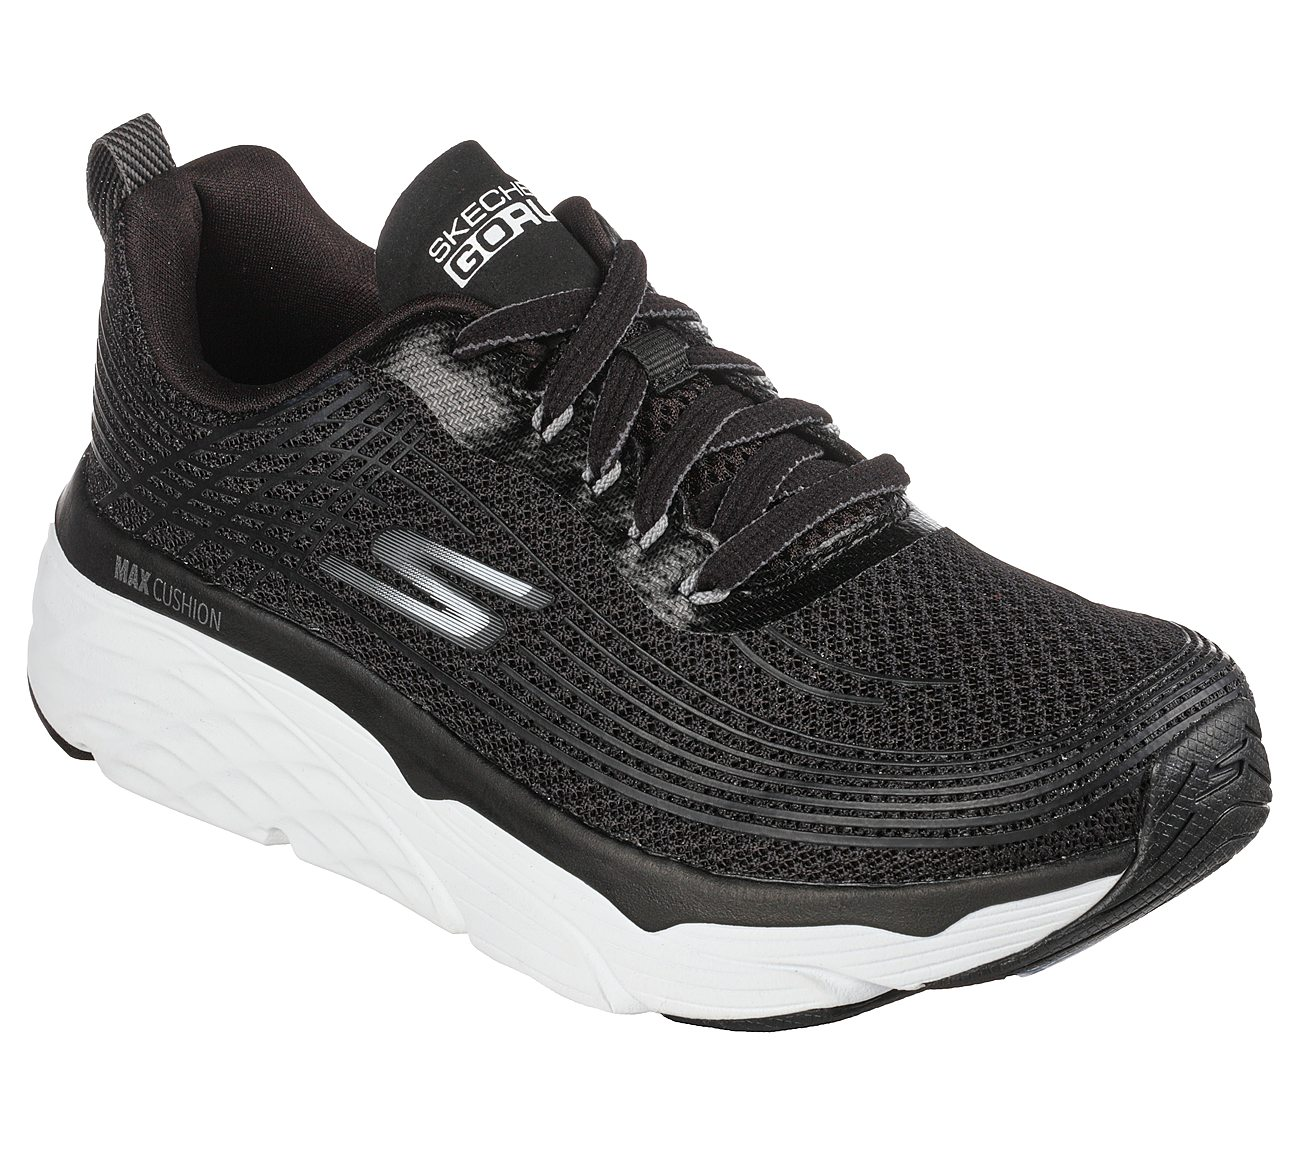 Buy Skechers Skechers Max Cushioning Elite Skechers Max Cushioning